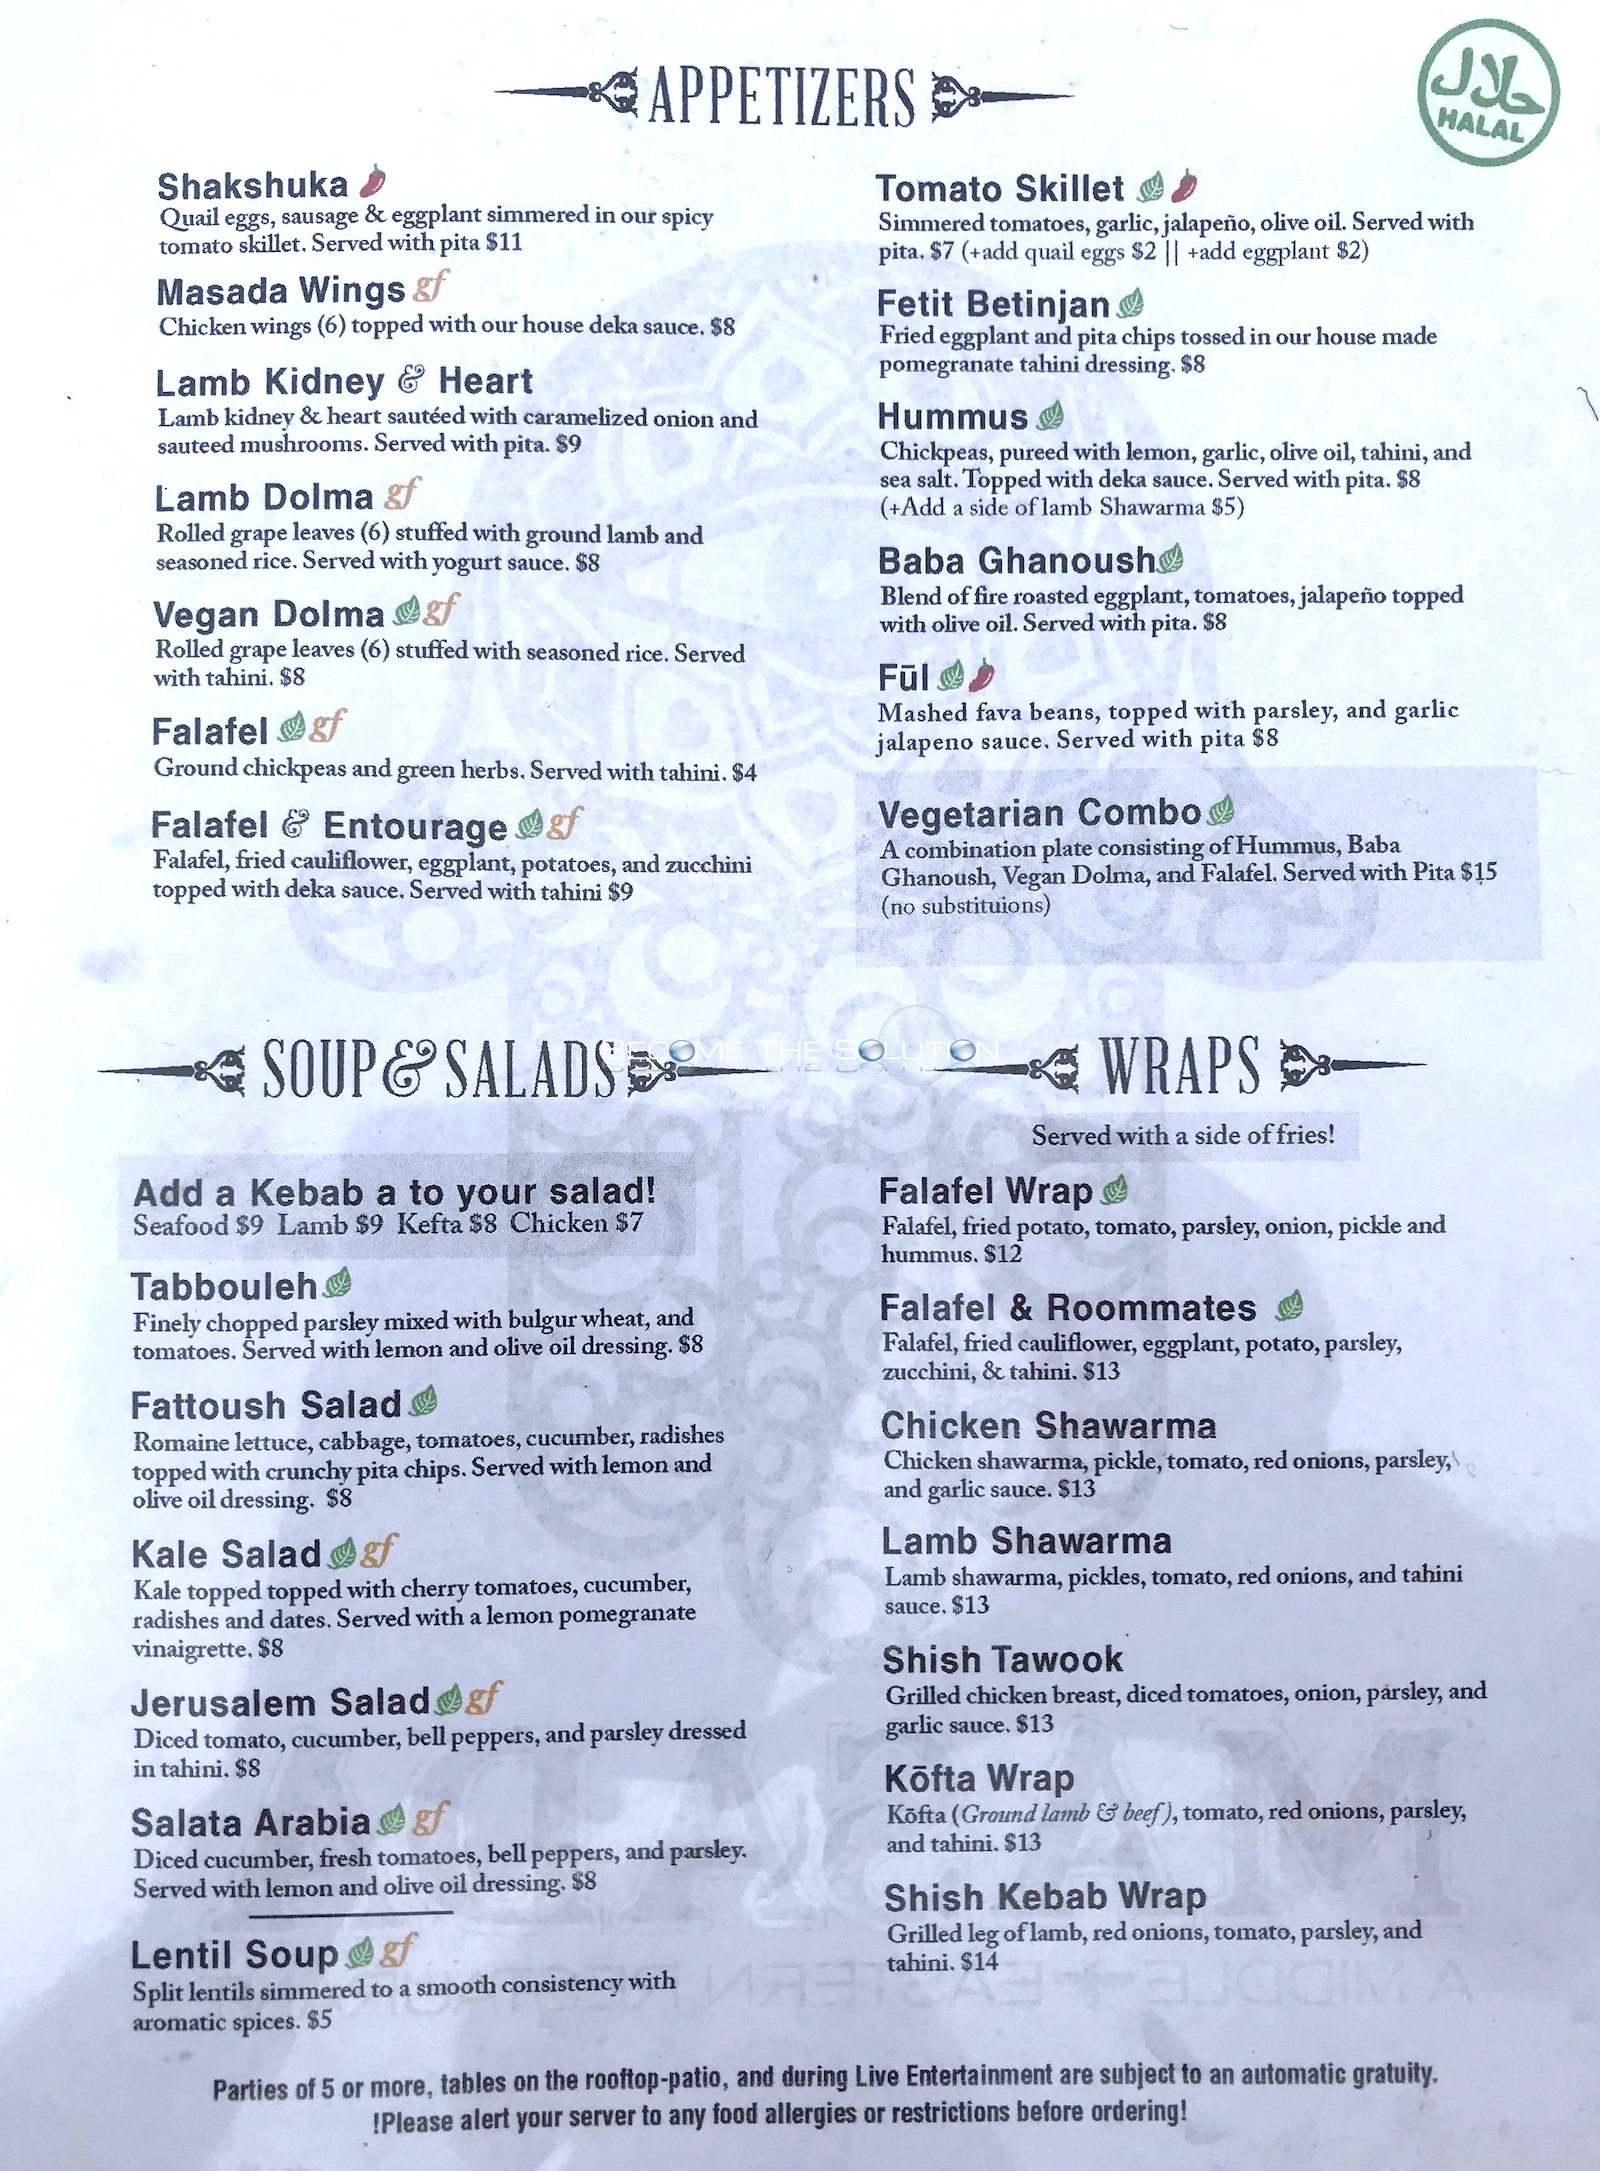 Masada chicago menu 1